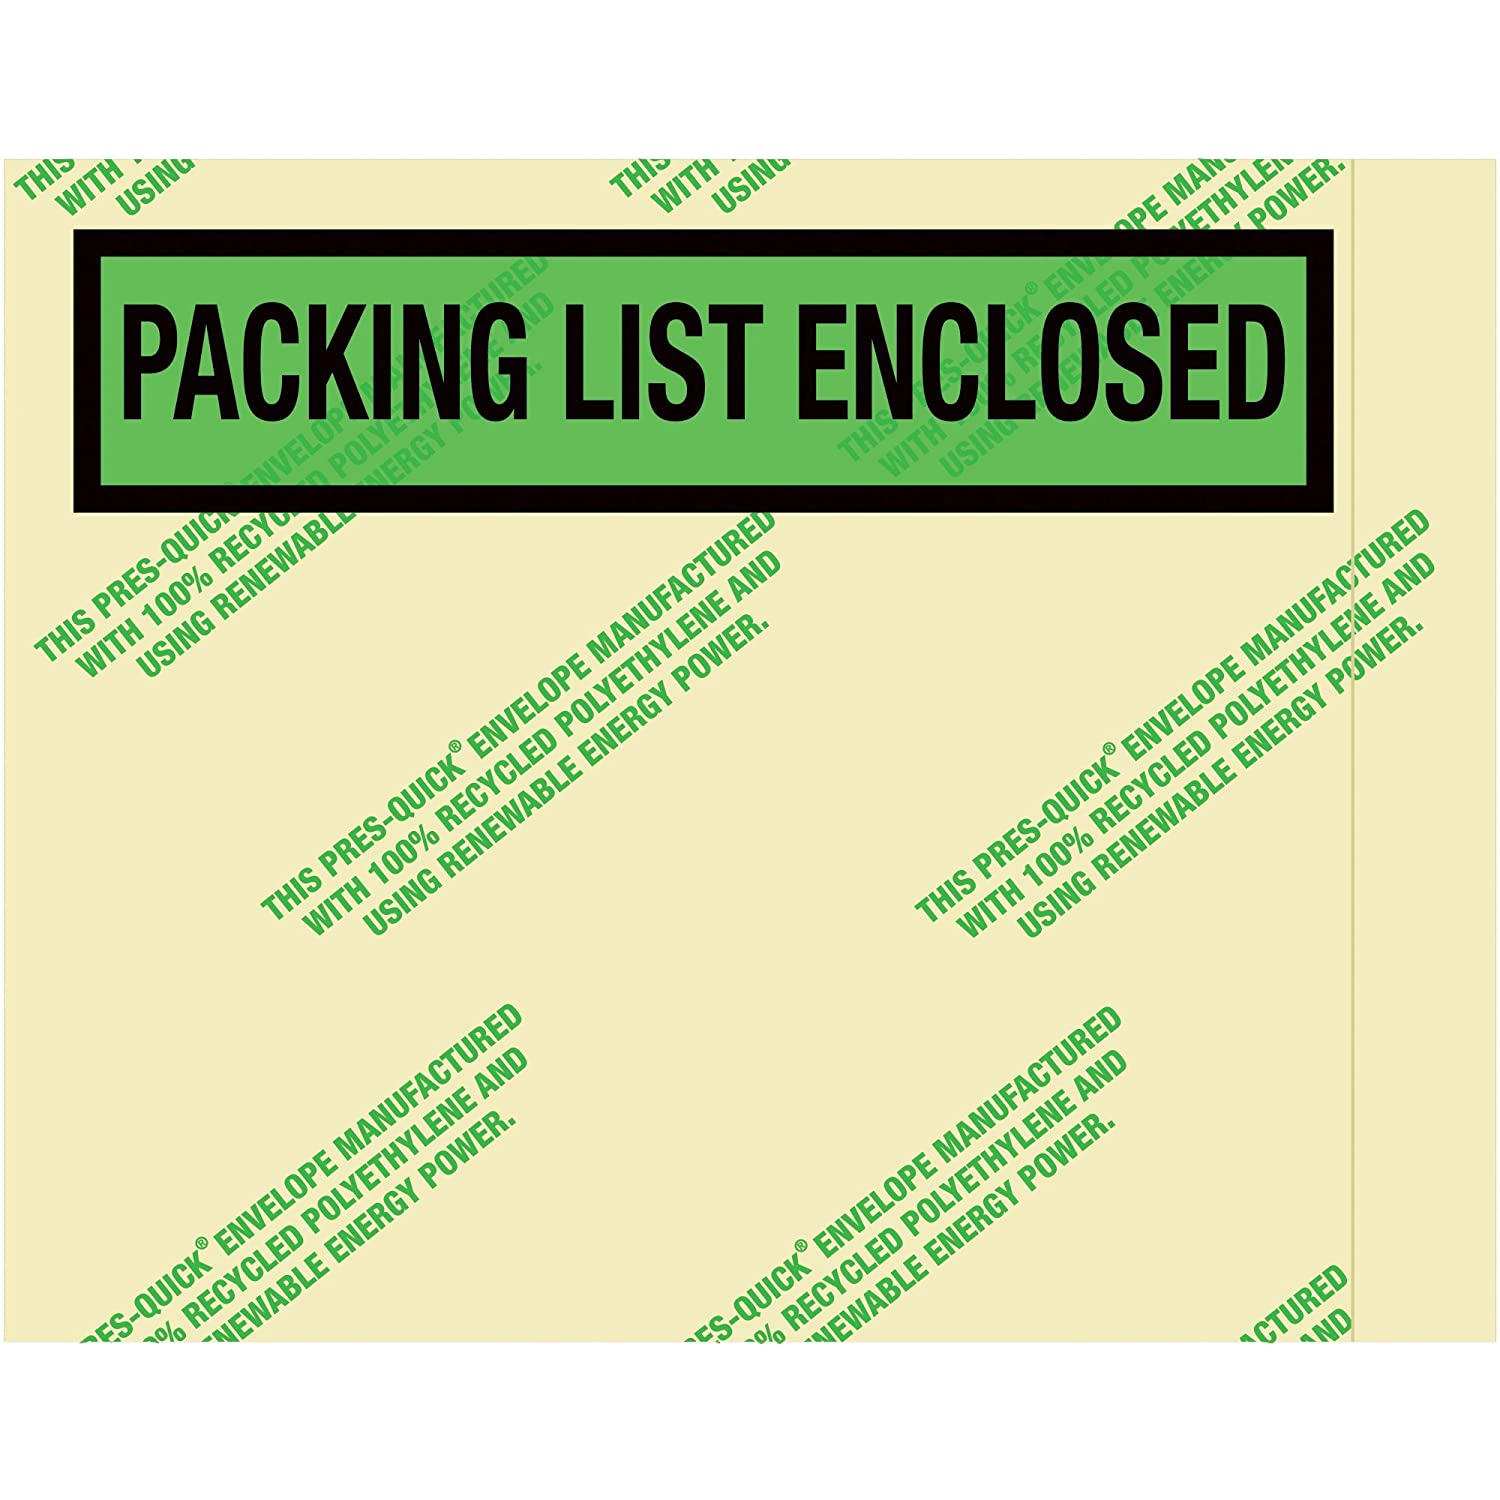 Load Capacity 5width Boxes Fast BFPQGREEN19 EnvironmentalPacking List Enclosed Envelopes Green 7 Length Thick Pack of 1000